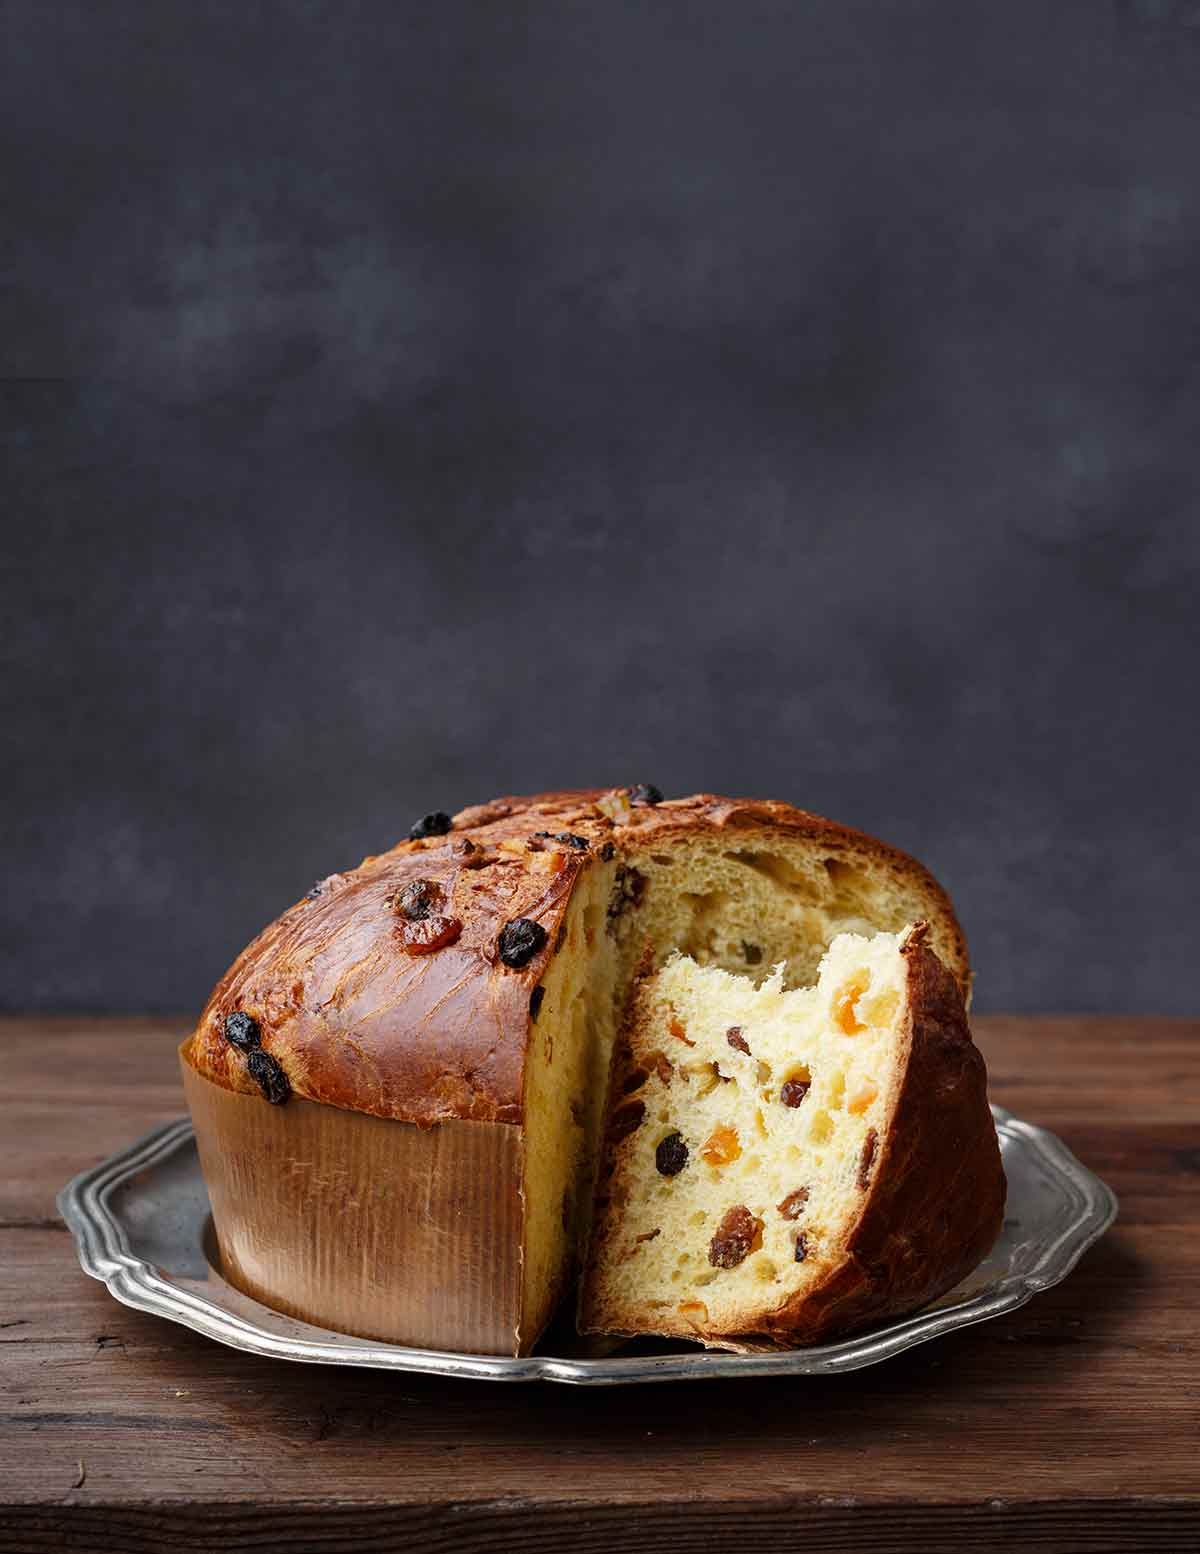 A panettone studded with dried fruit on a silver platter with a couple of wedges cut from it.